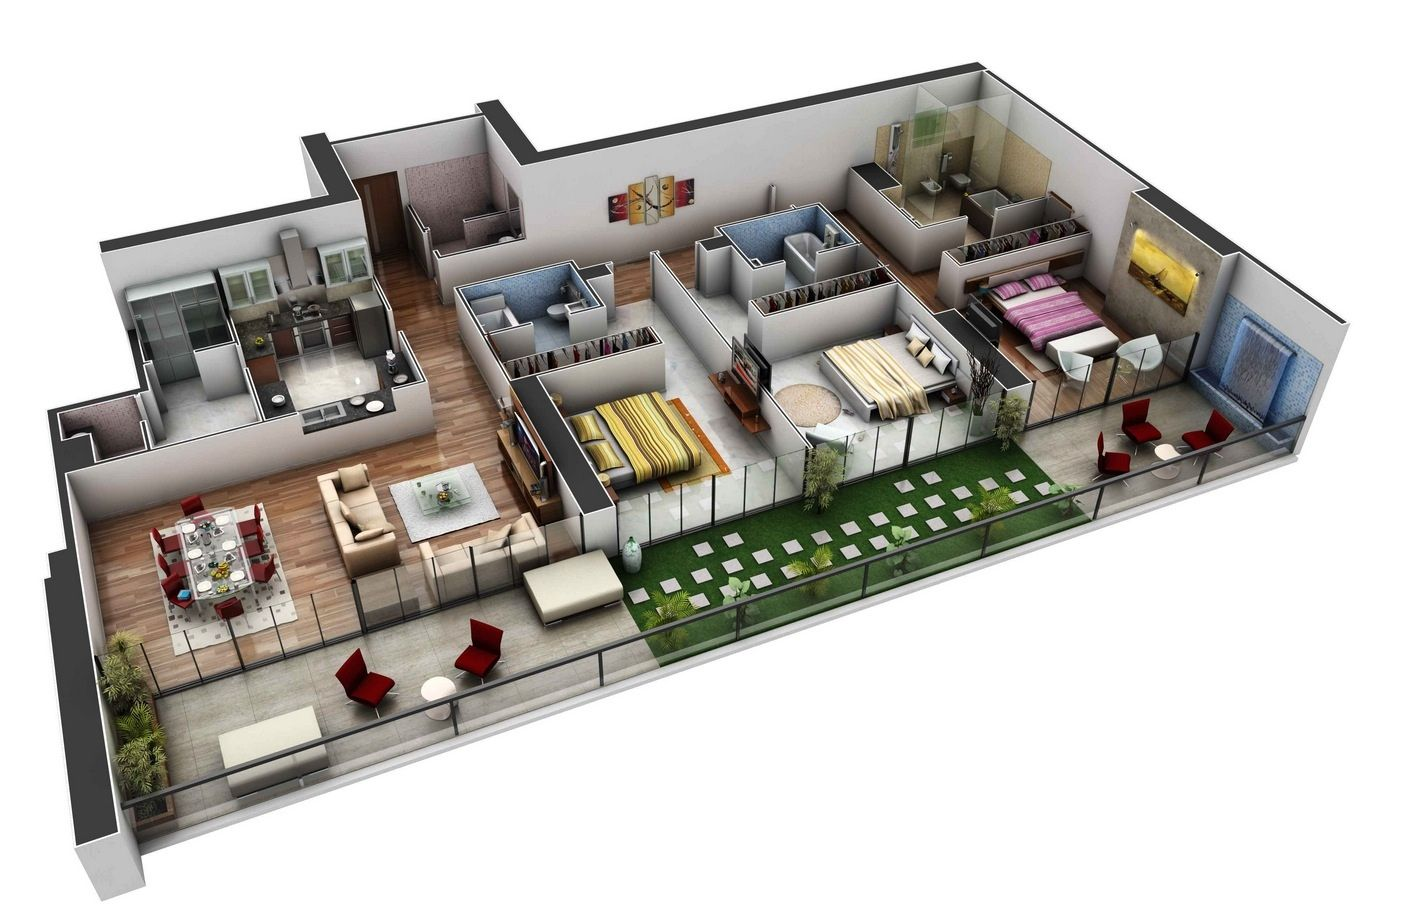 50 Three 3 Bedroom ApartmentHouse Plans Roommate Bedrooms